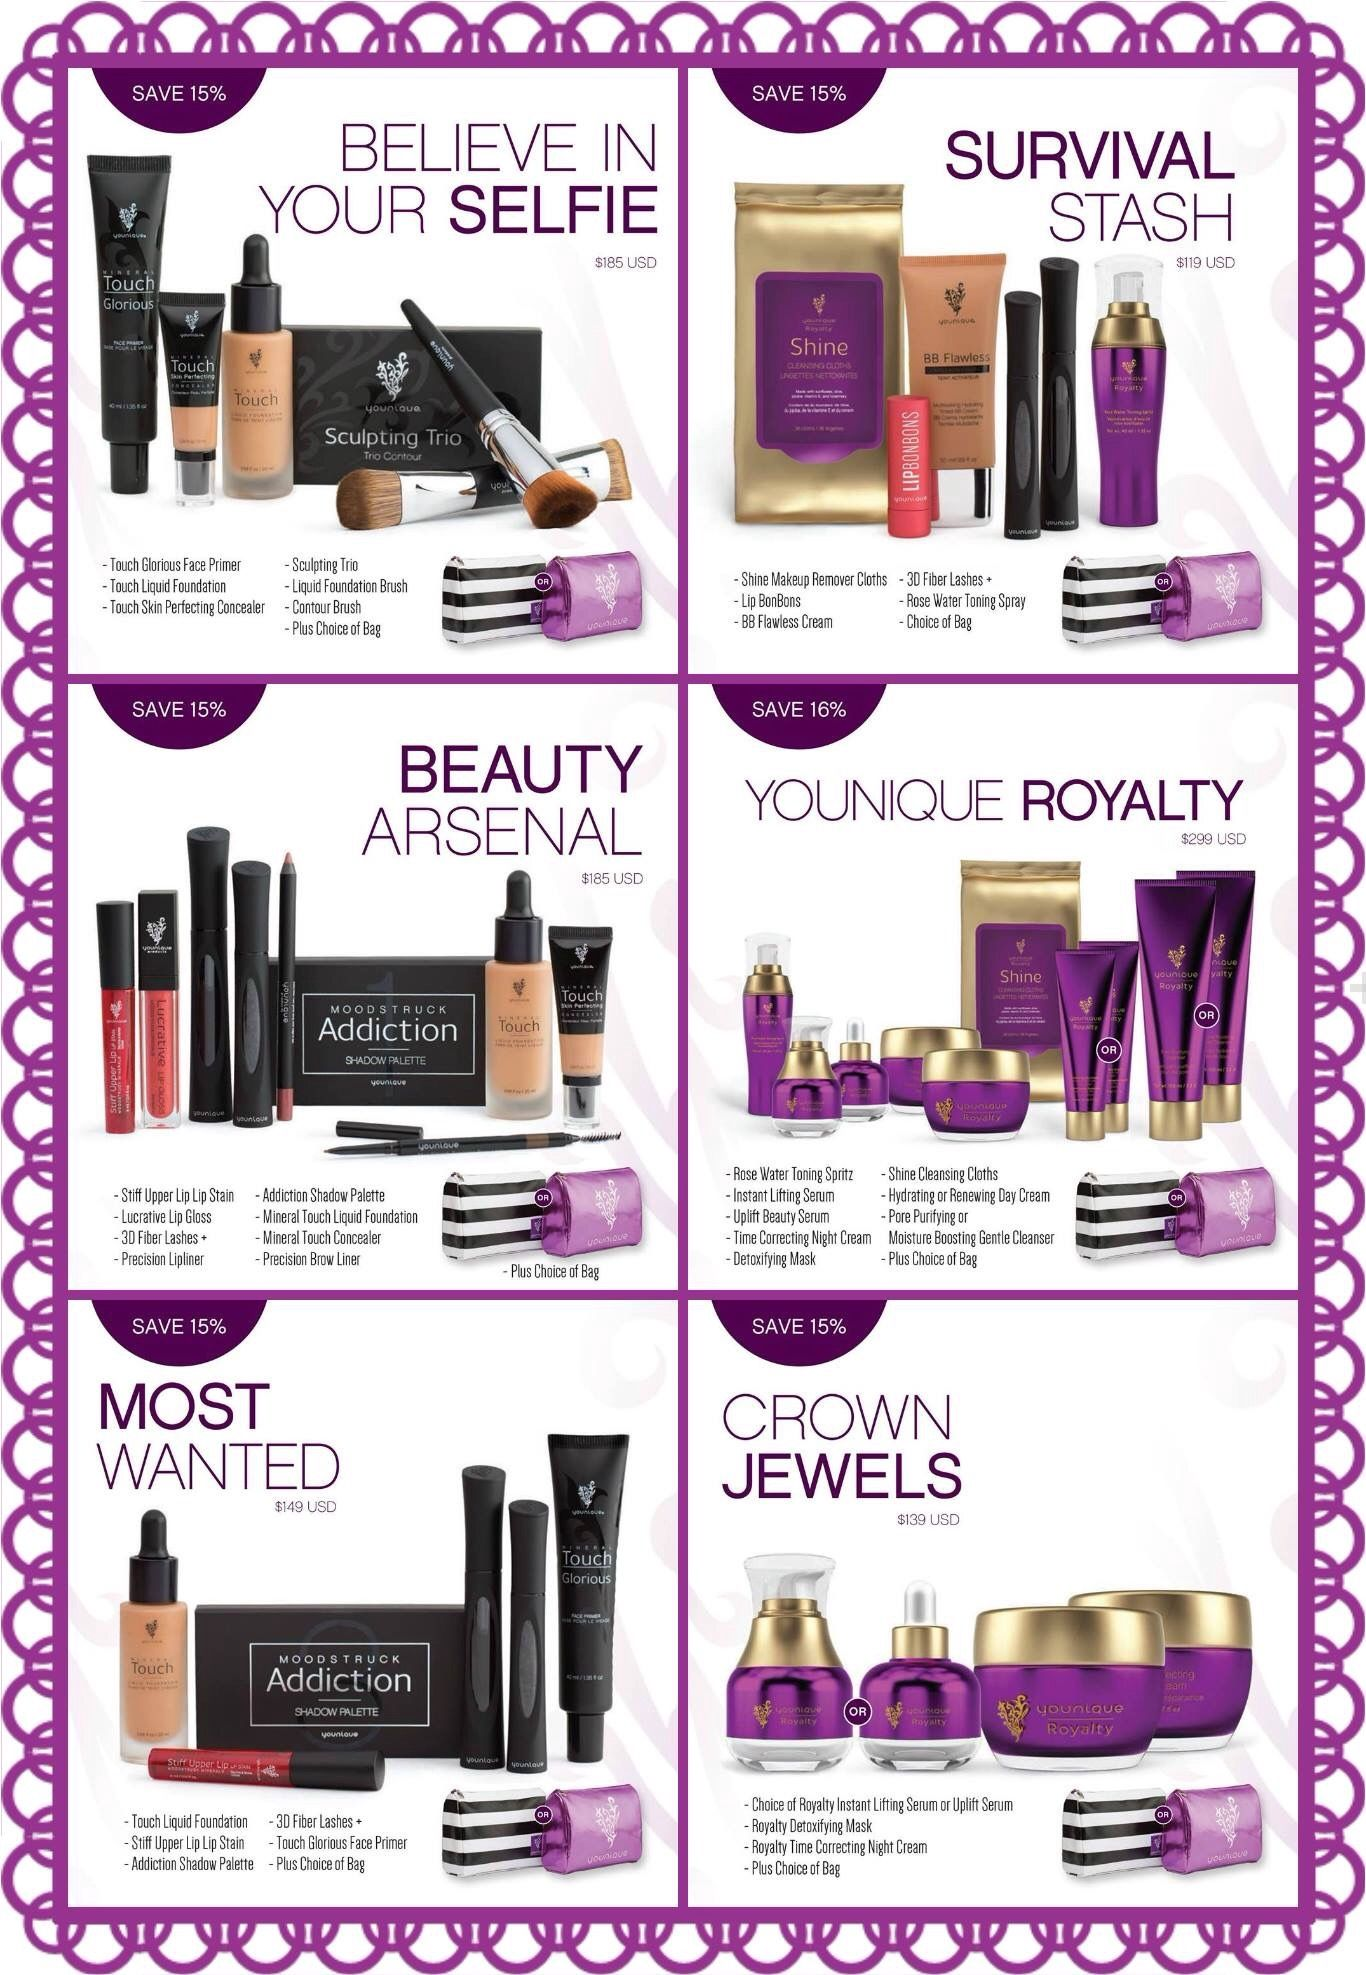 2016 Younique Fall Collections! Younique makeup